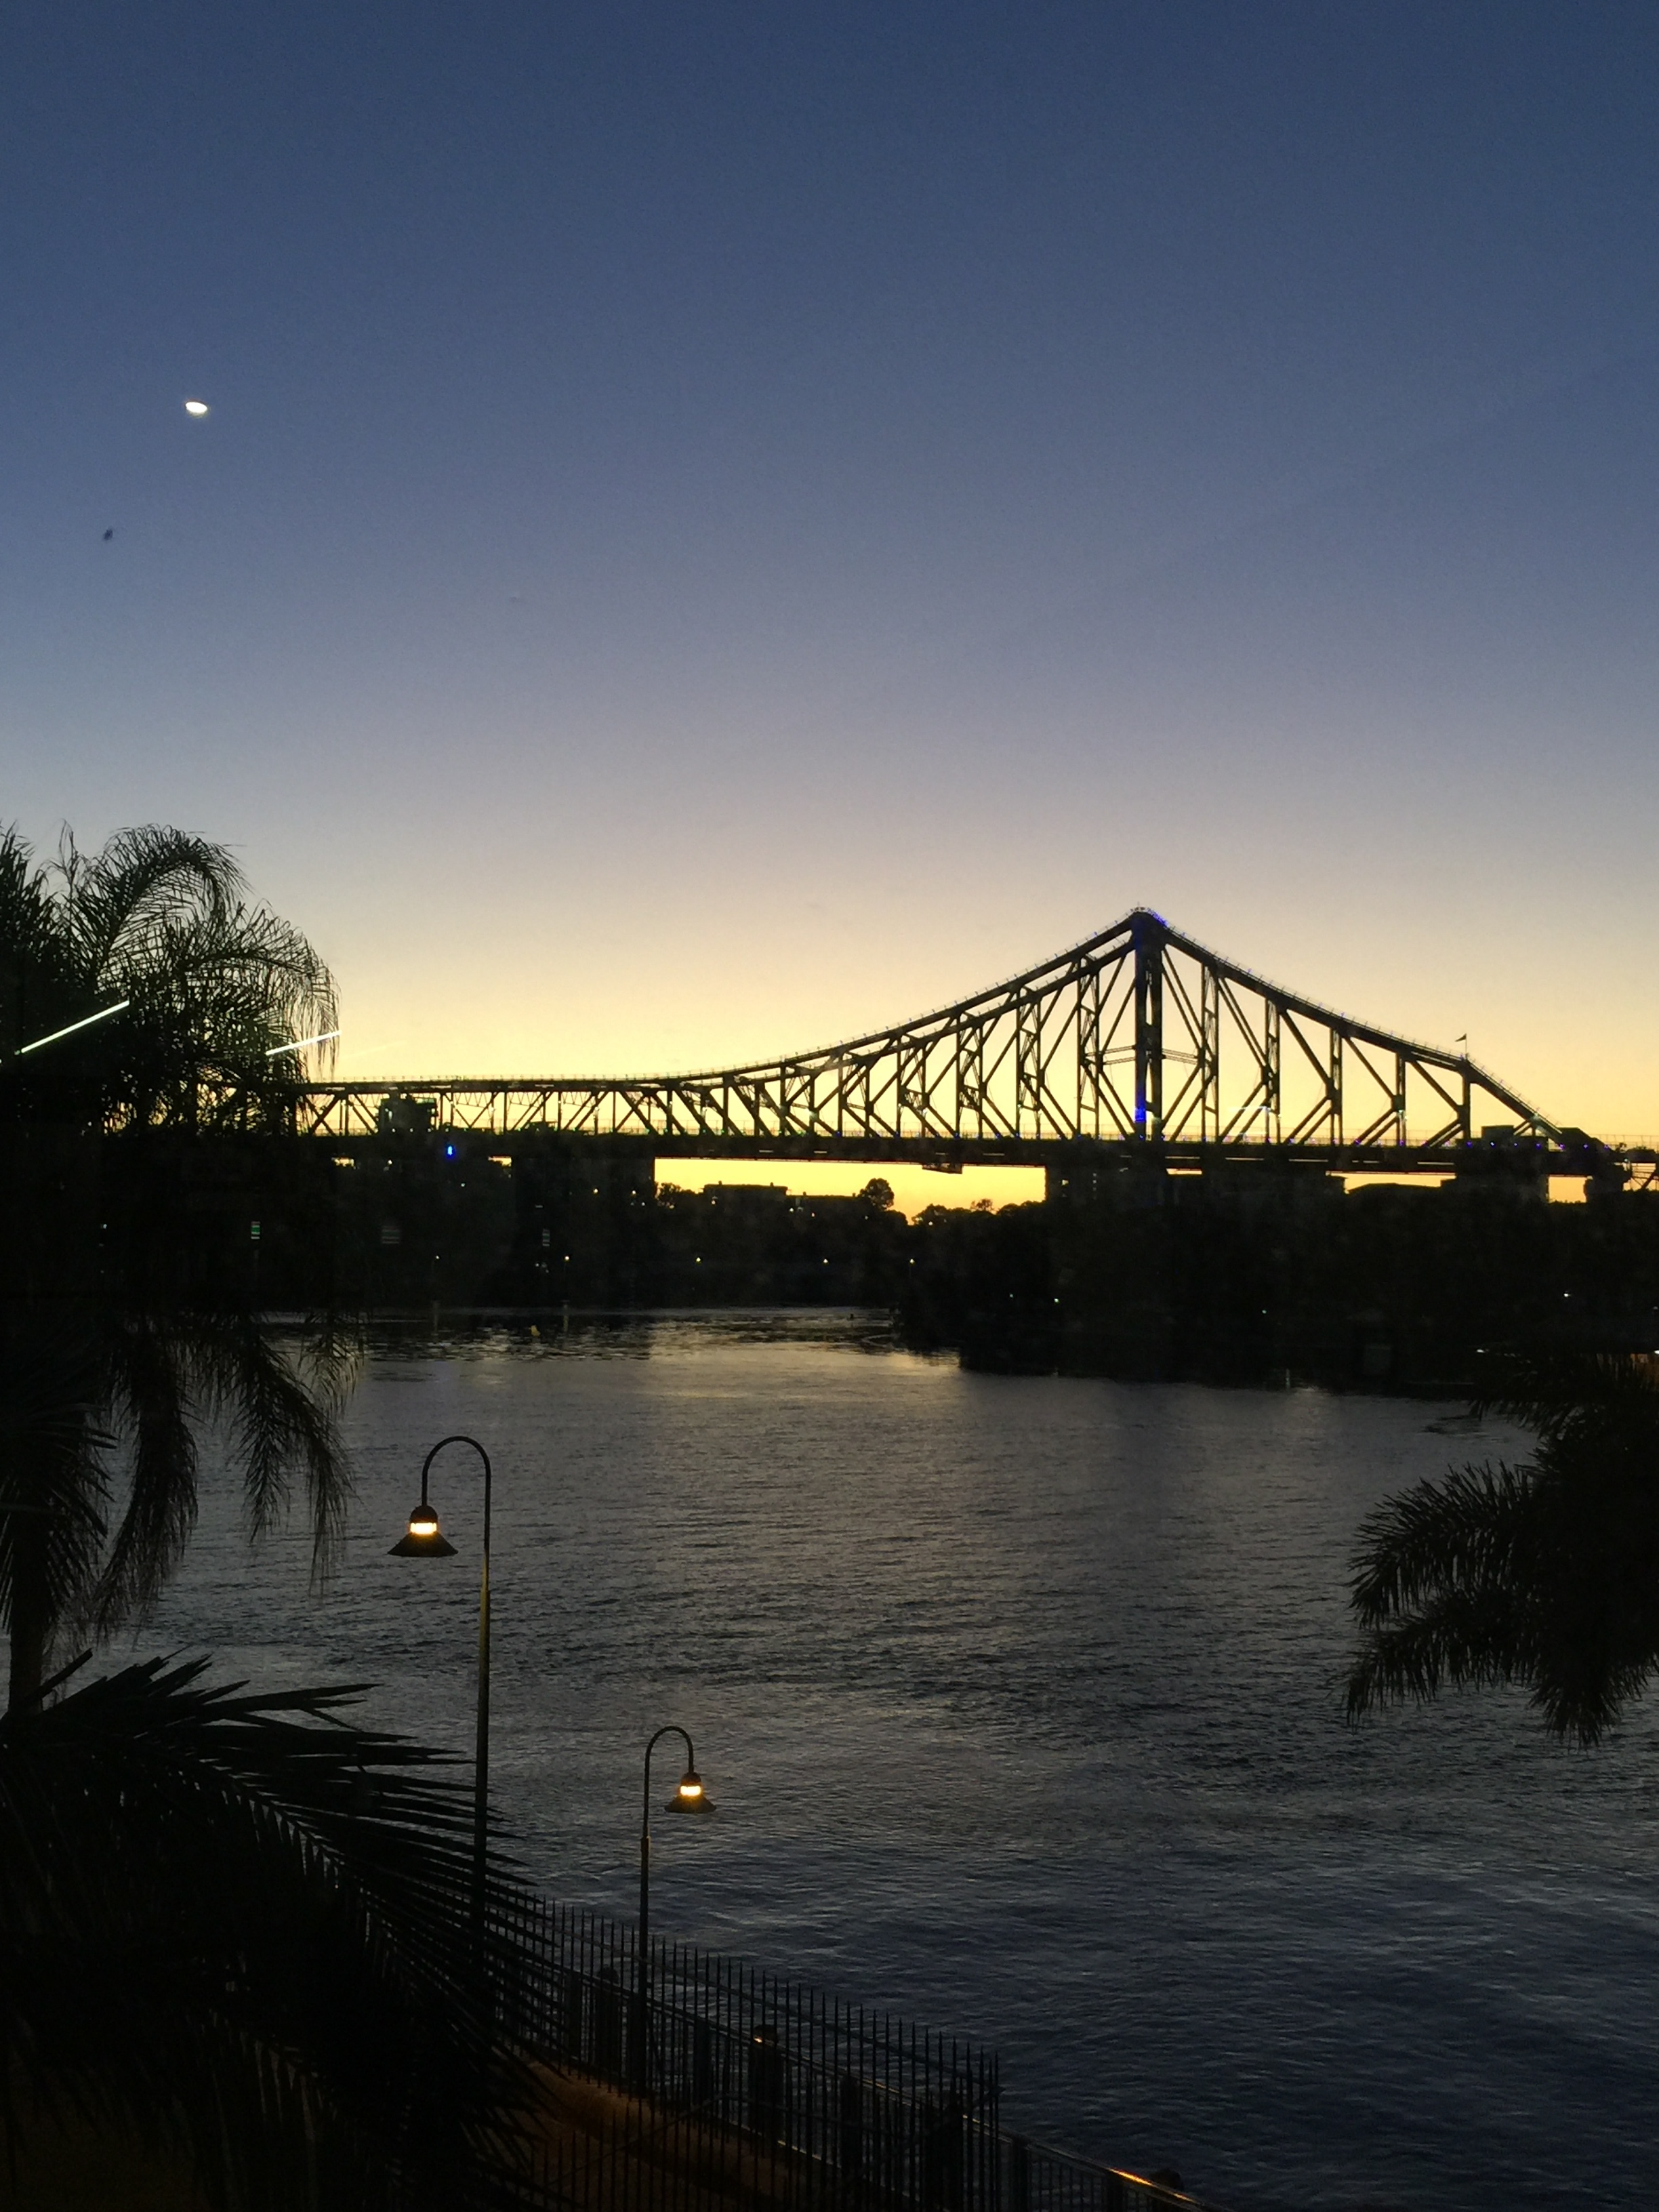 Brisbane city at one of our client's committee meetings - held monthly at 7.15am.